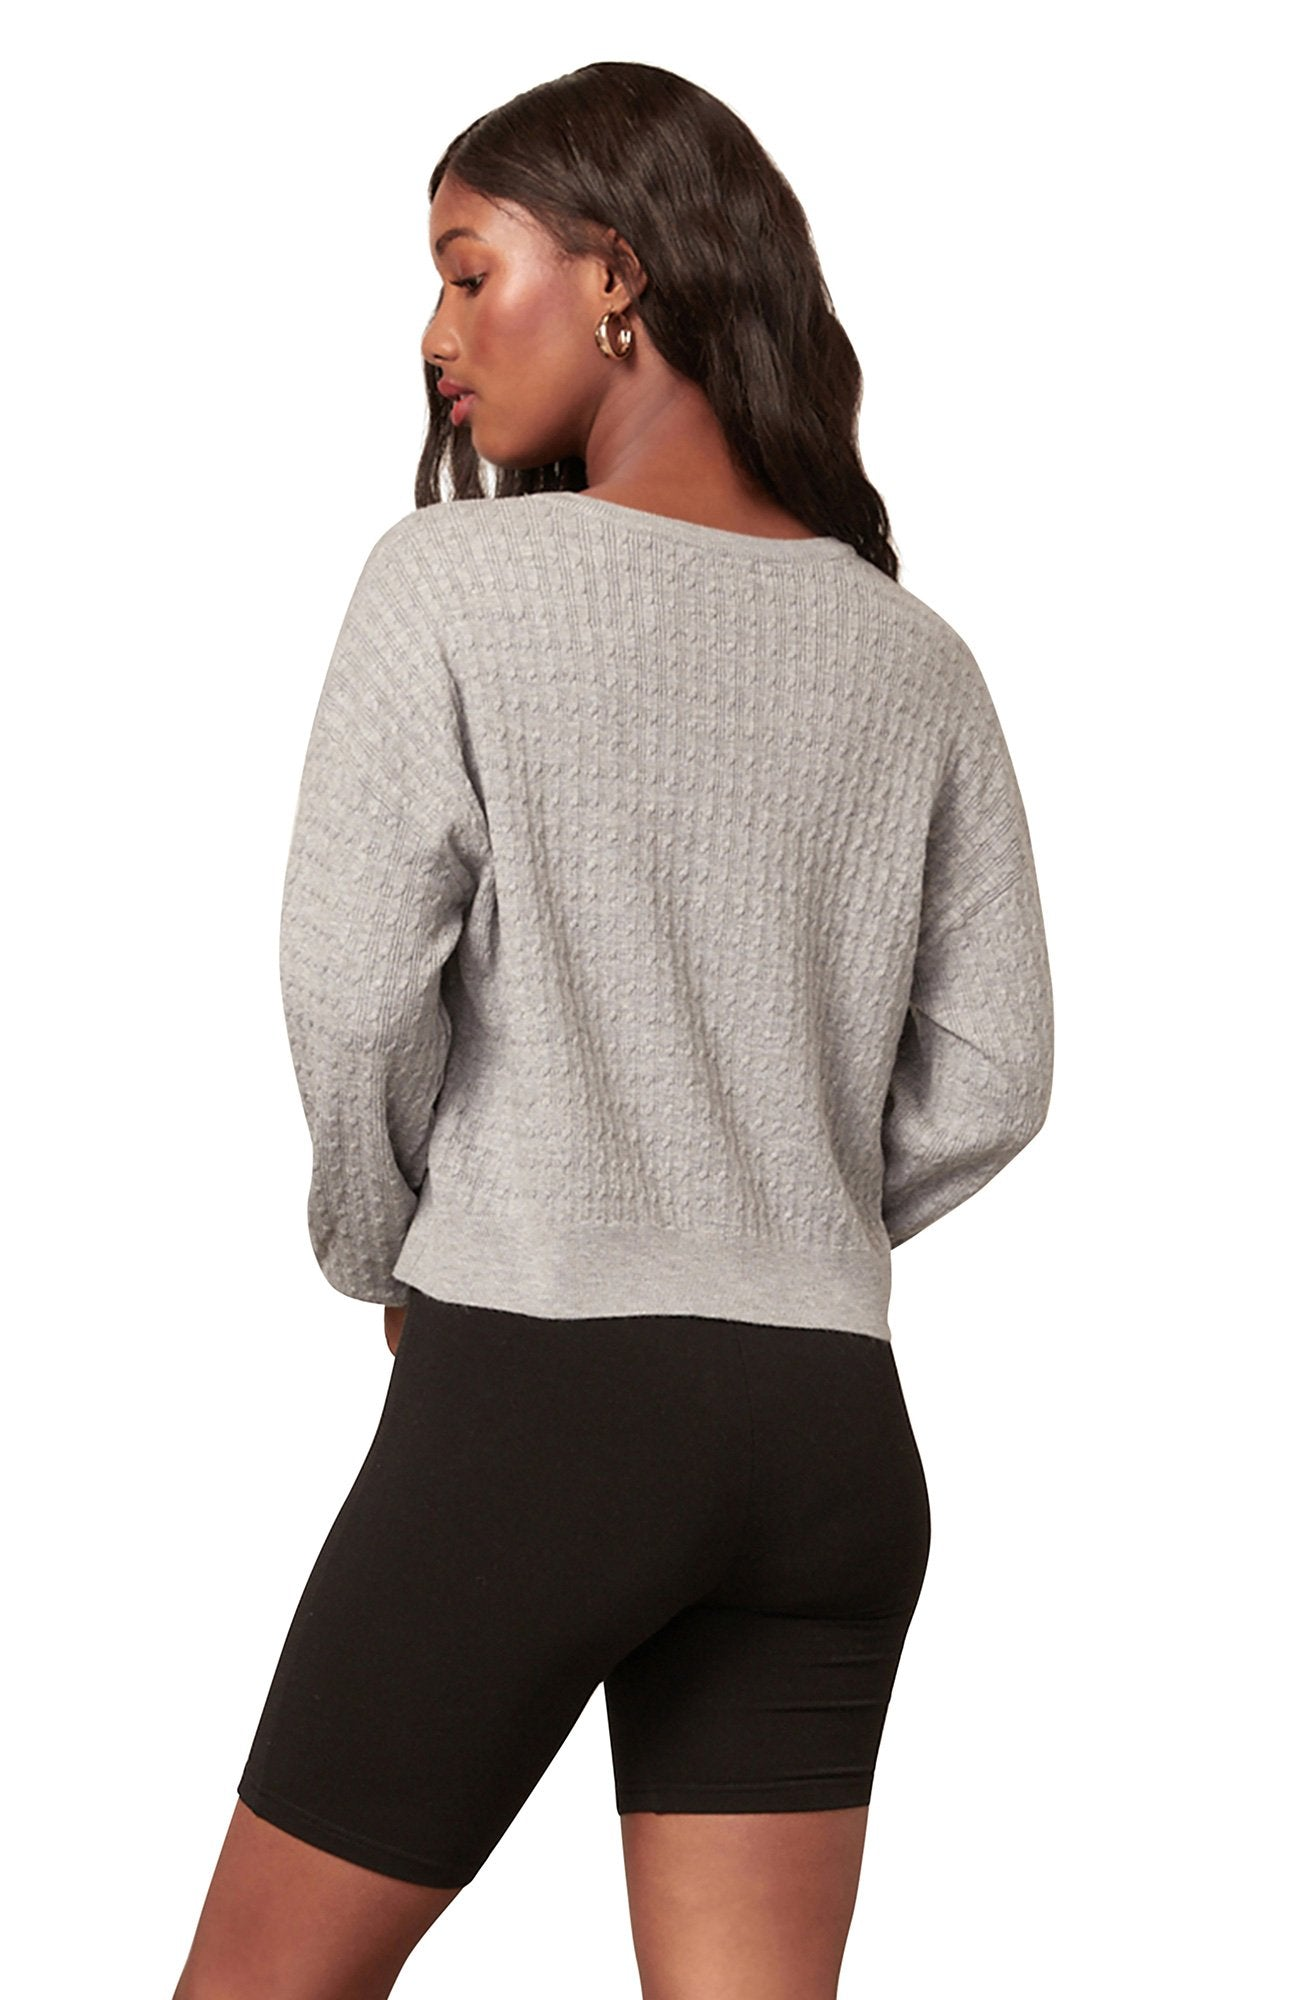 Cable Manners Top in Light Heather Grey